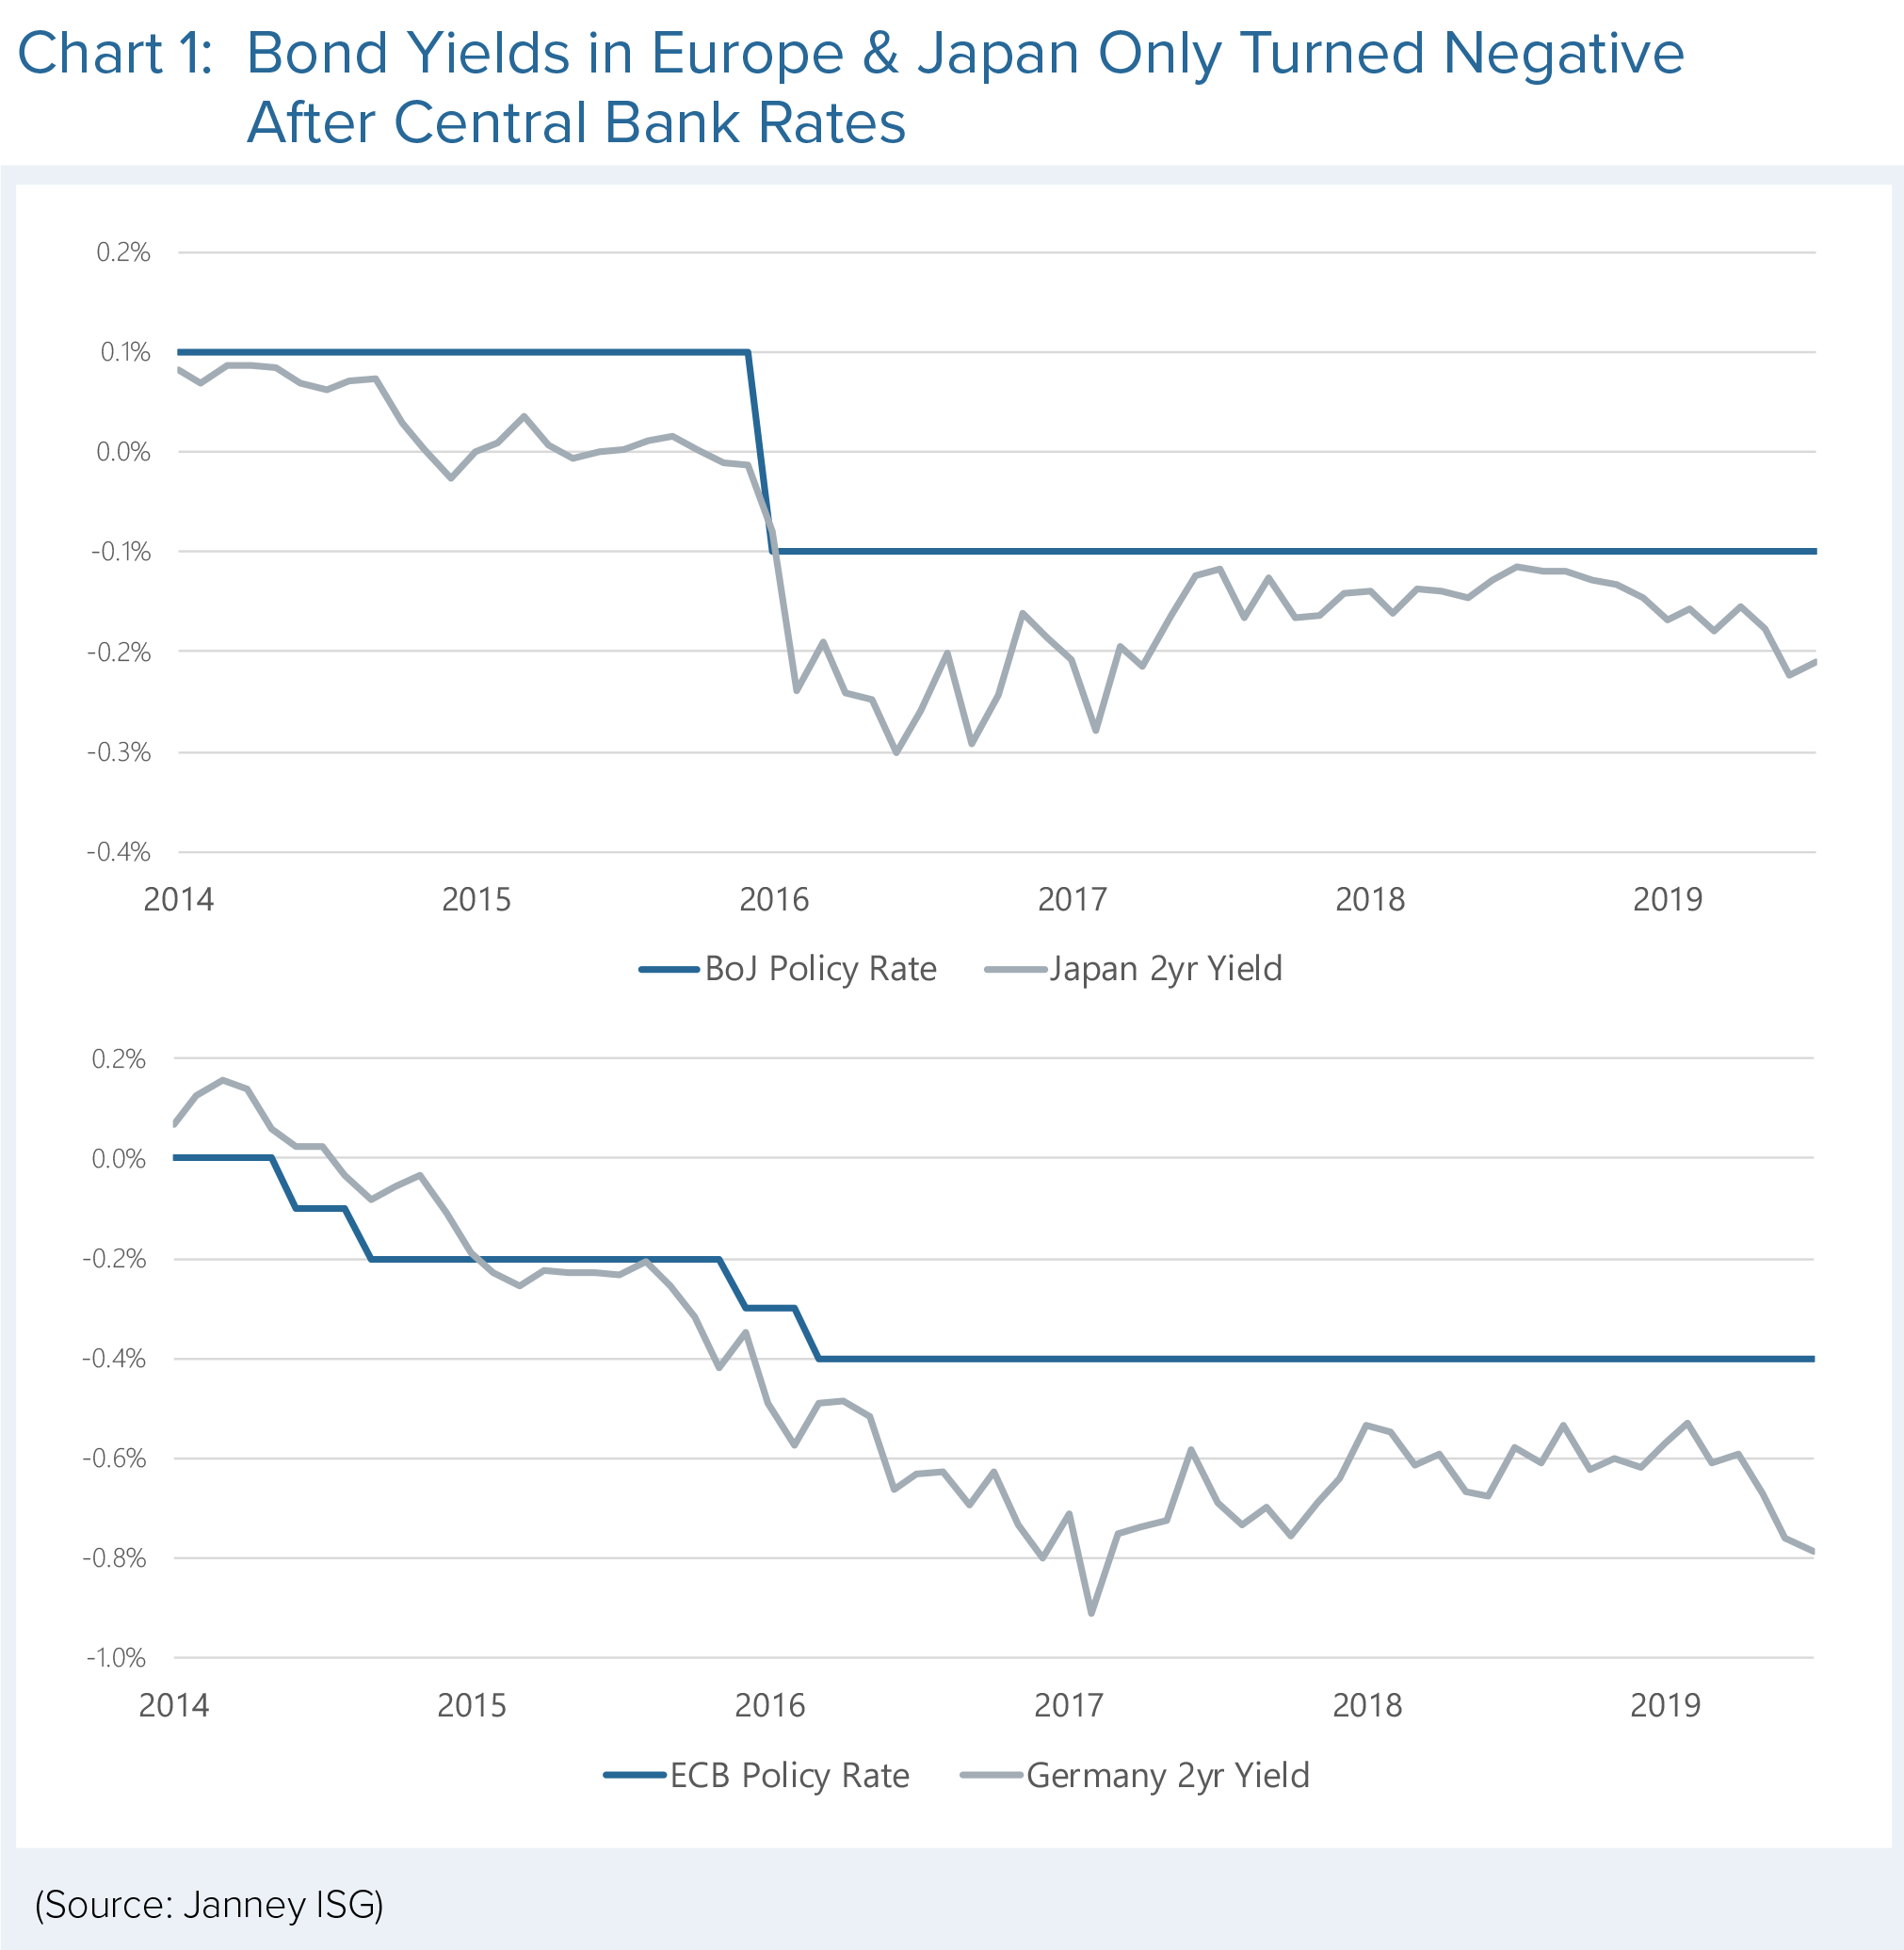 Two charts show bond yields in Europe and Japan